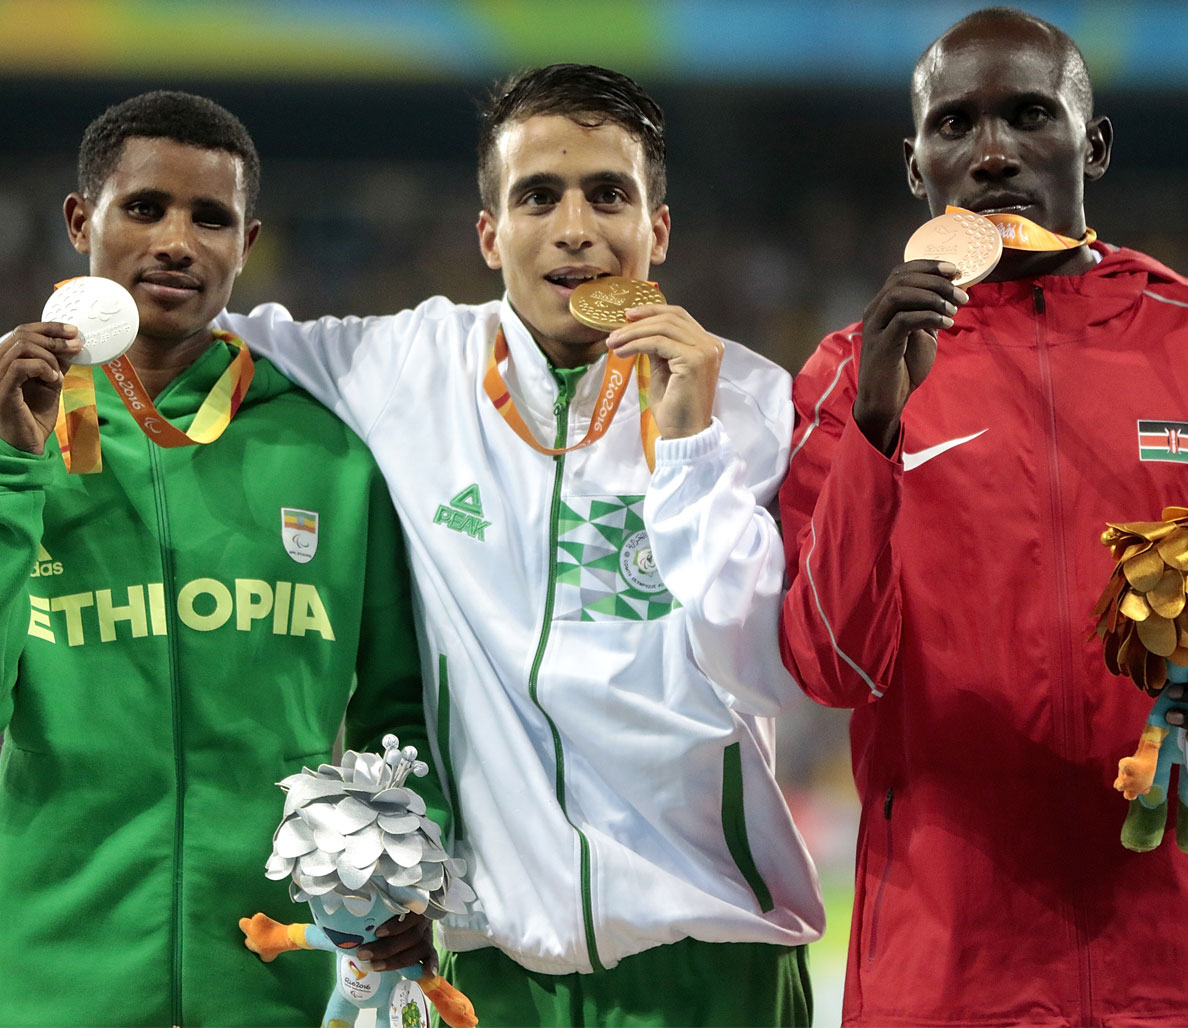 4 Paralympic Athletes Just Ran the 1500m Faster Than the 2016 Olympic Gold Medalist